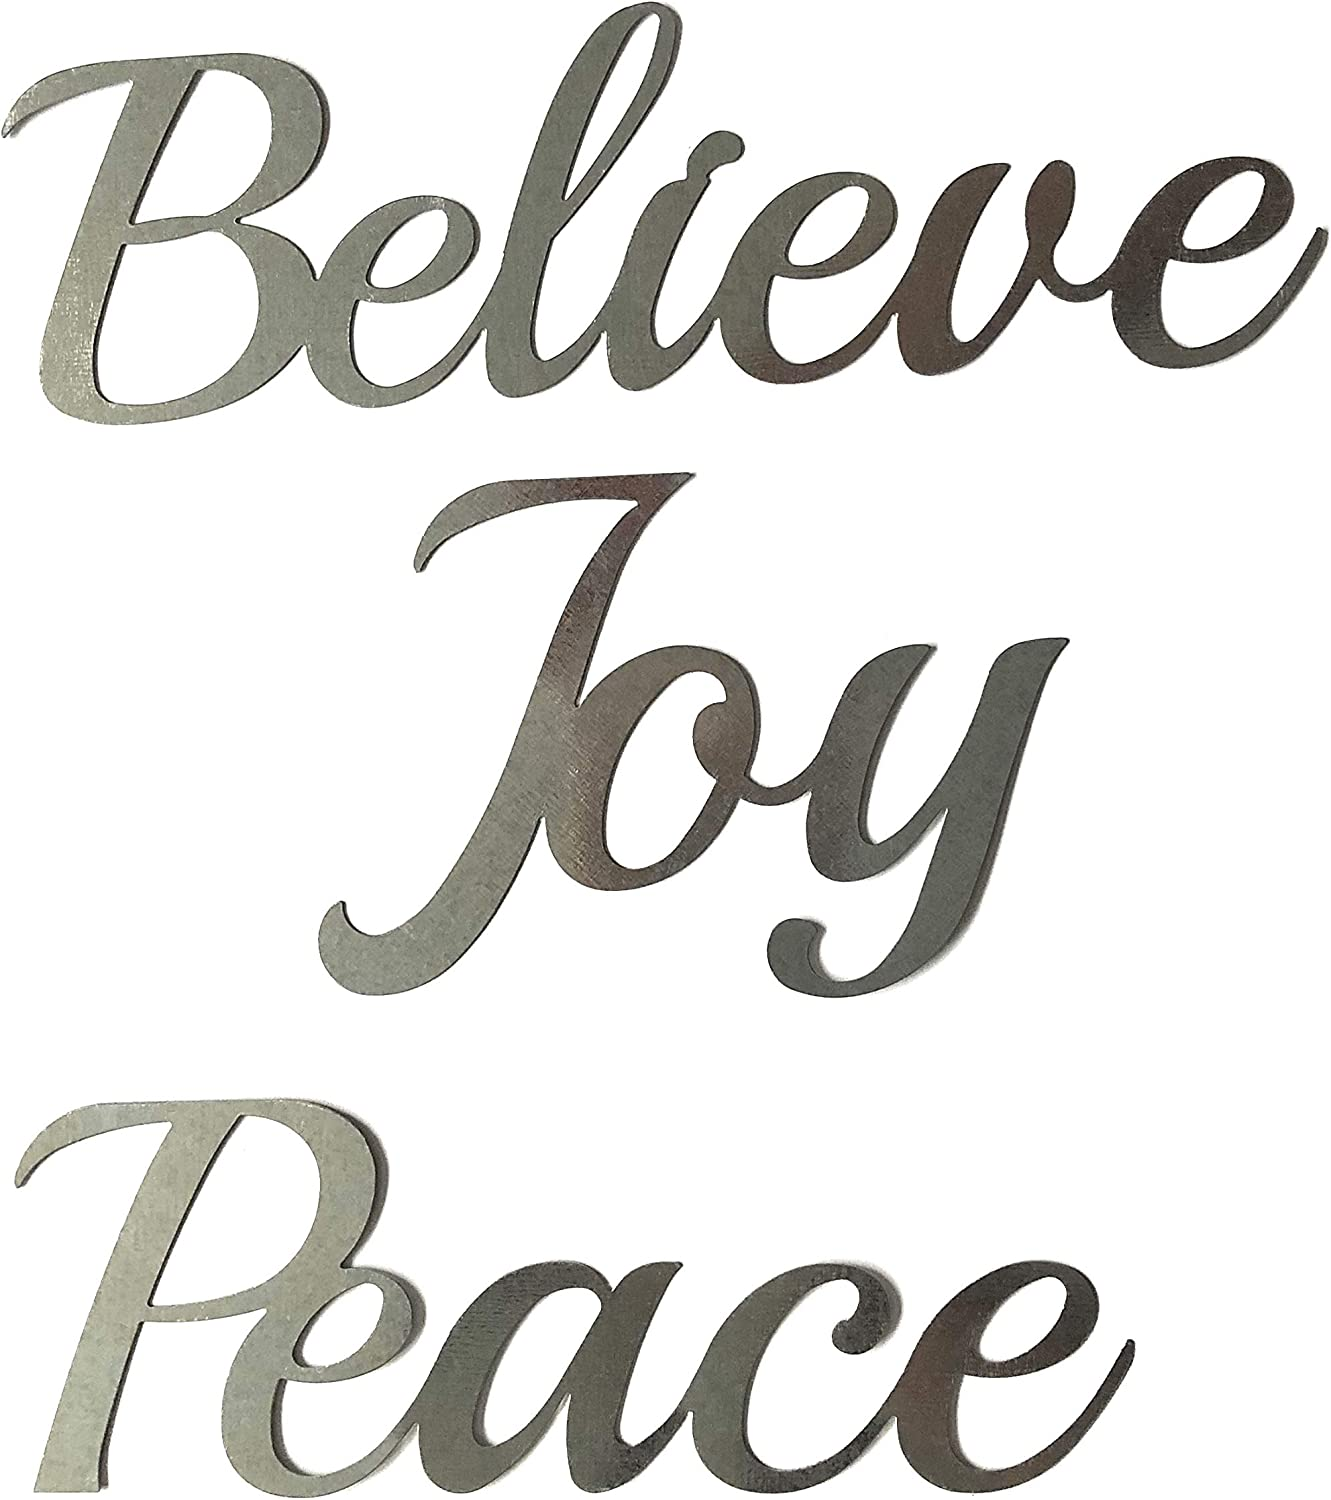 Crafter's Square Greenbrier Metal Holiday Christmas Wall Hanging Artwork Decor Plaques, 3 Cursive Words 9 in.: Peace, Joy, Believe